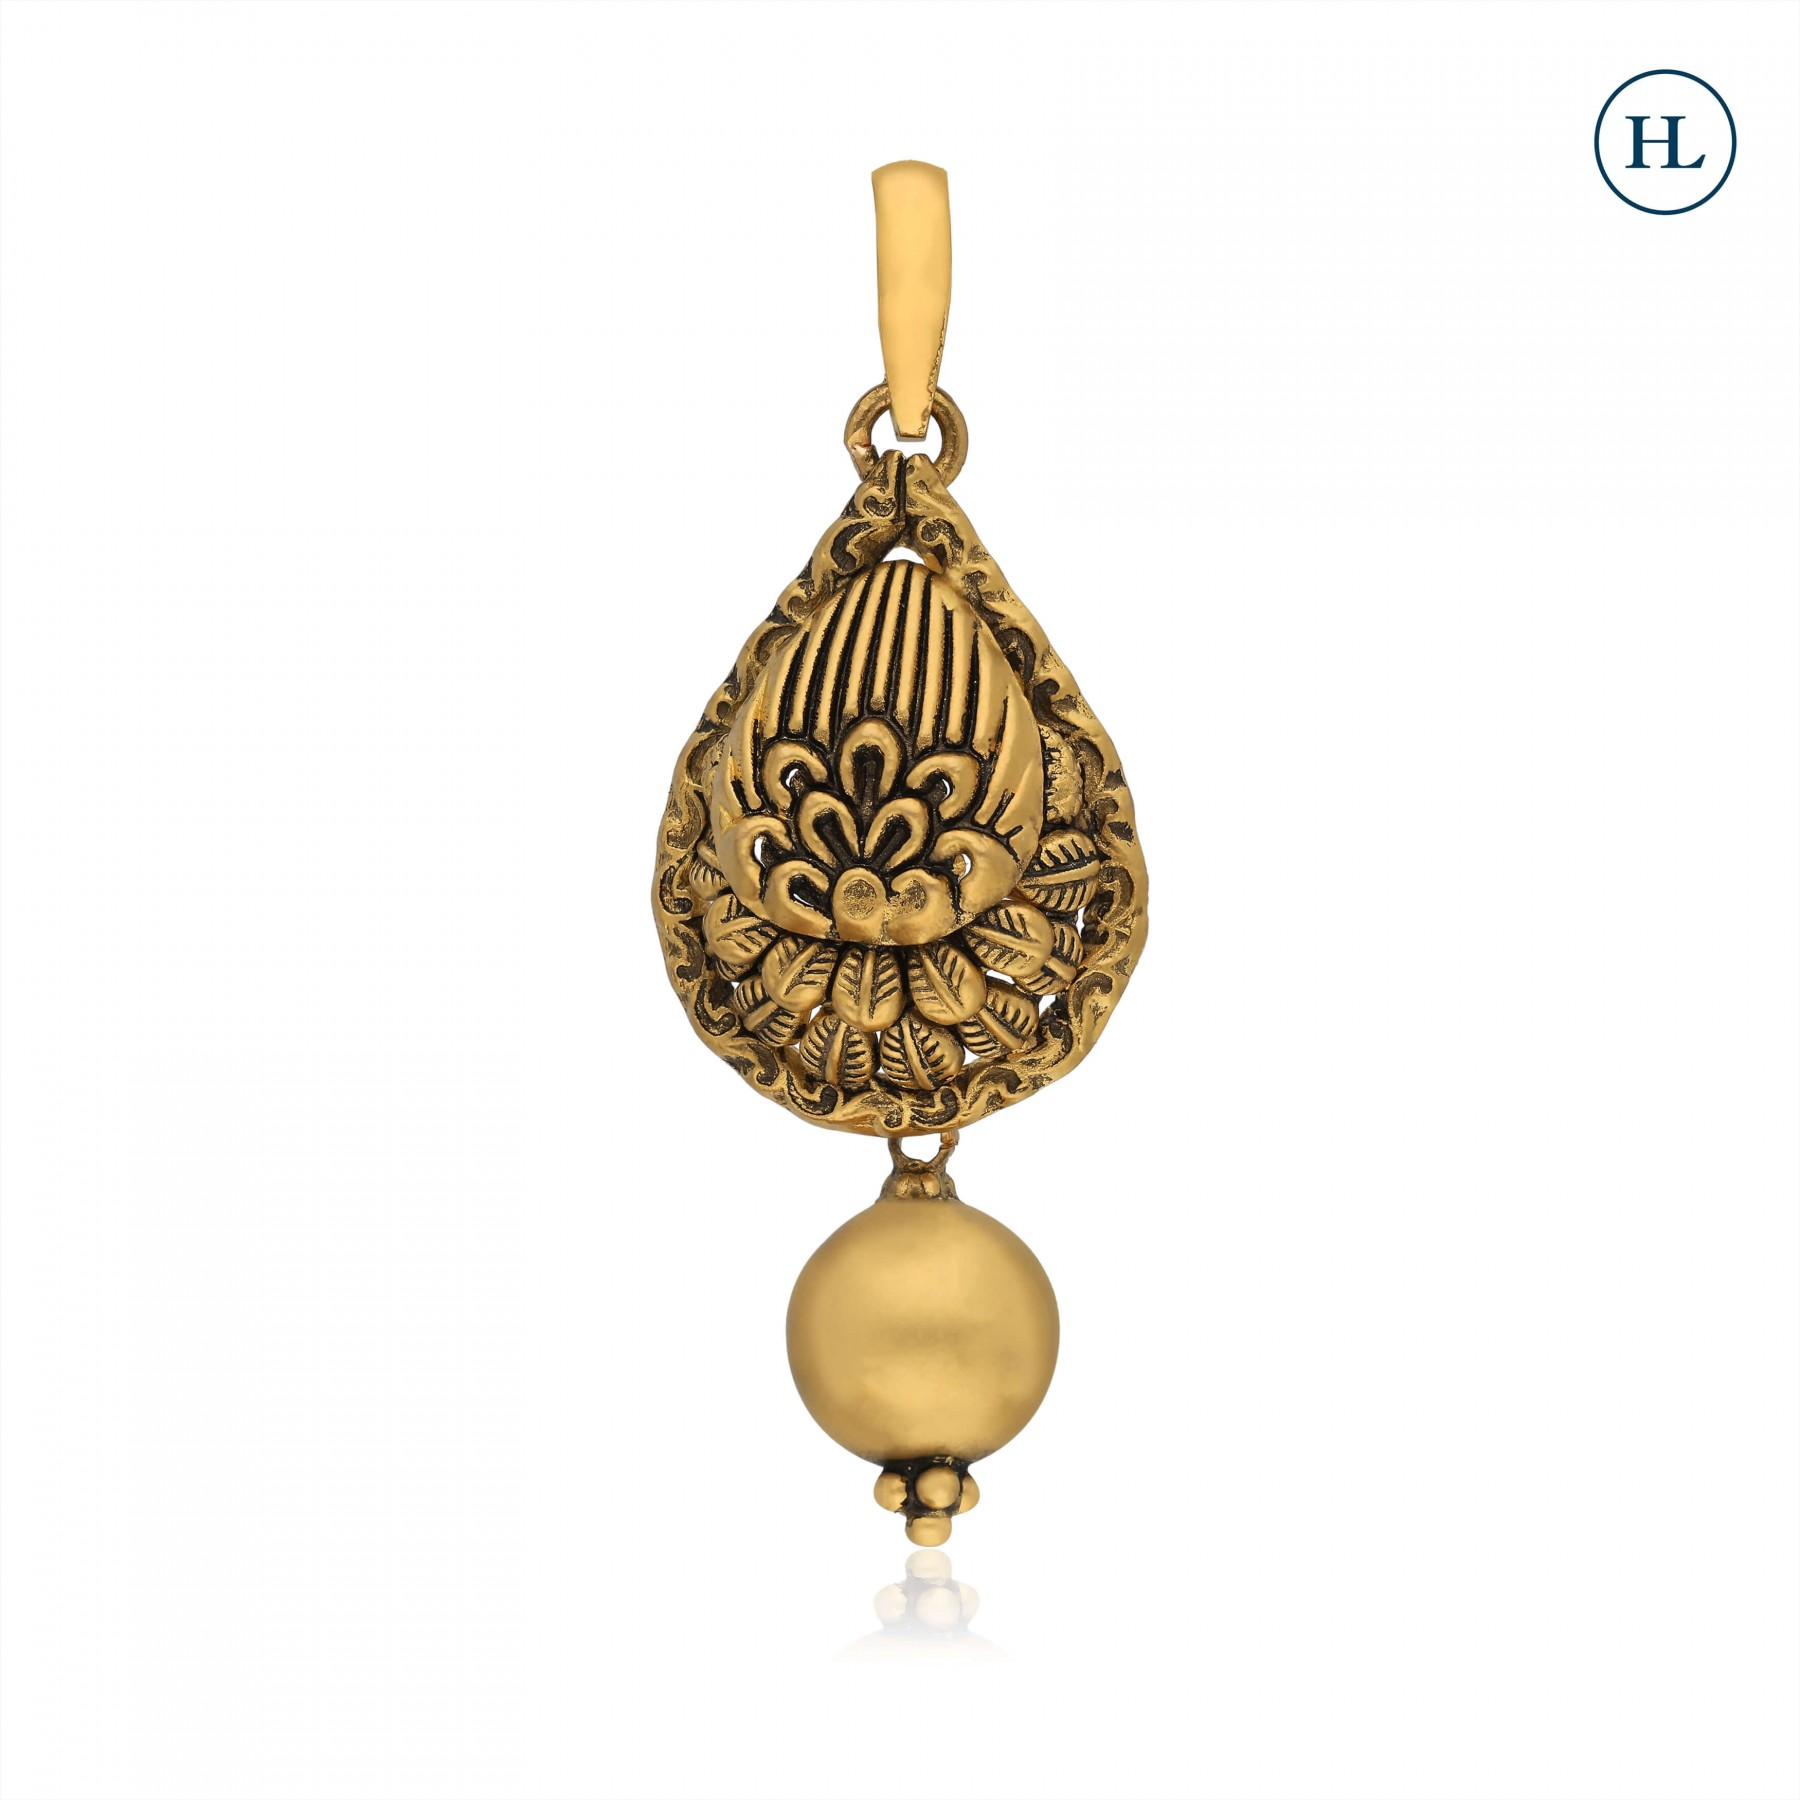 Antique-Styled Gold Pendant